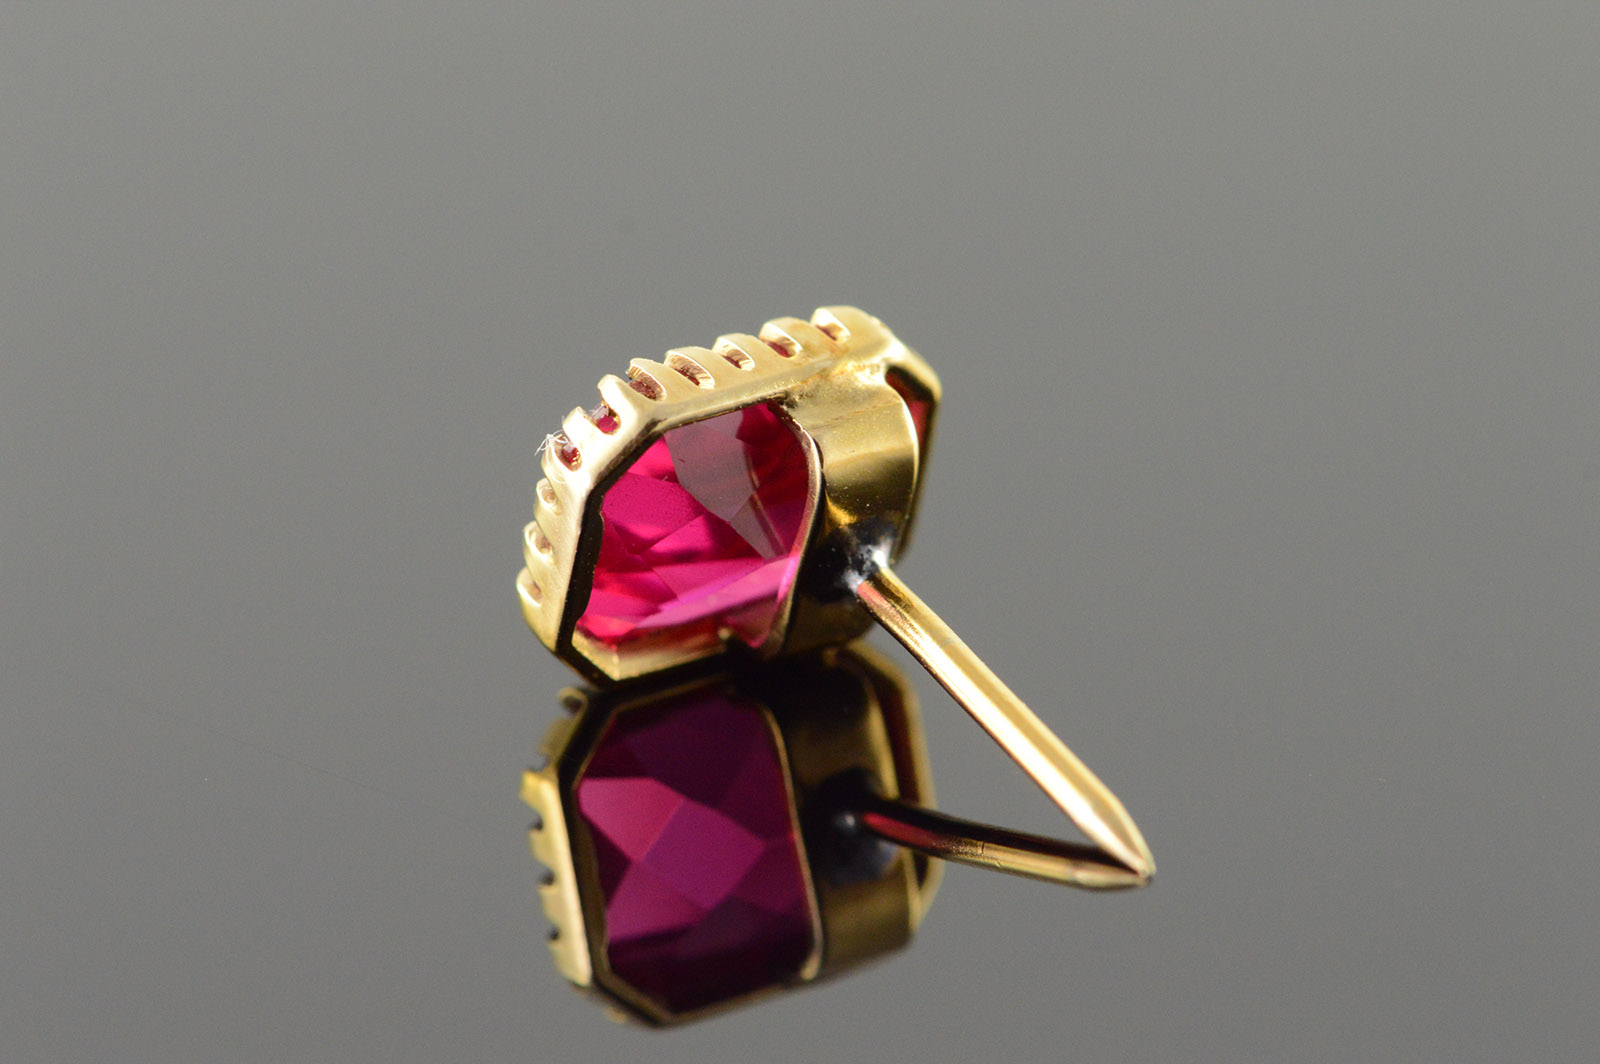 2041eea89f3d 10K 10x9mm Red Stone Tie Tack Yellow Gold Pin/Brooch   Property Room